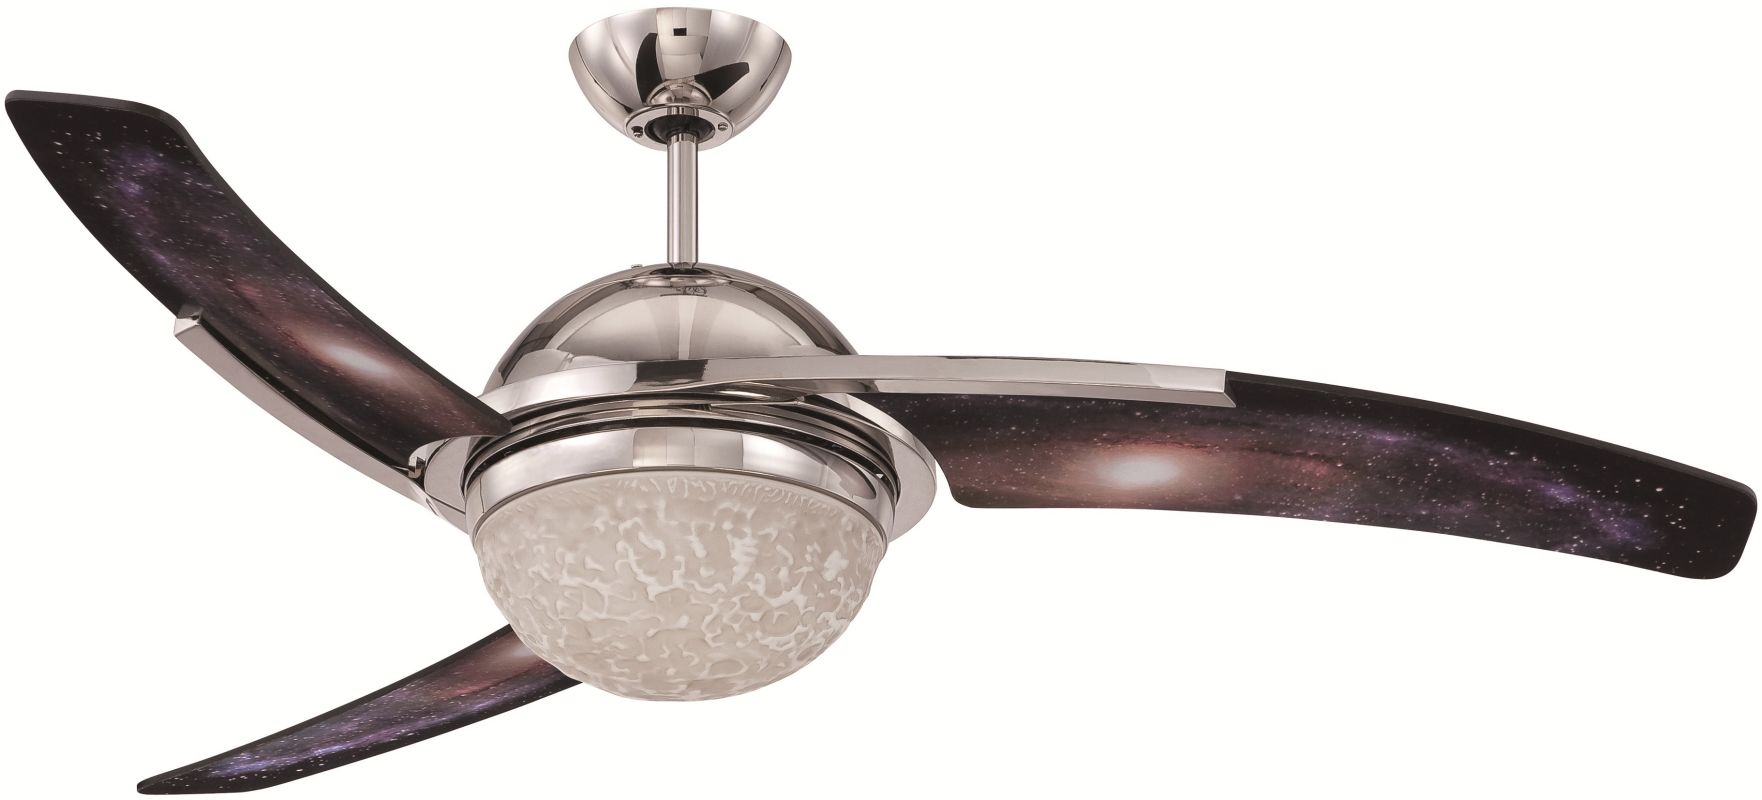 "Craftmade Juna 54"" 3 Blade Indoor Ceiling Fan - Blades Remote and"